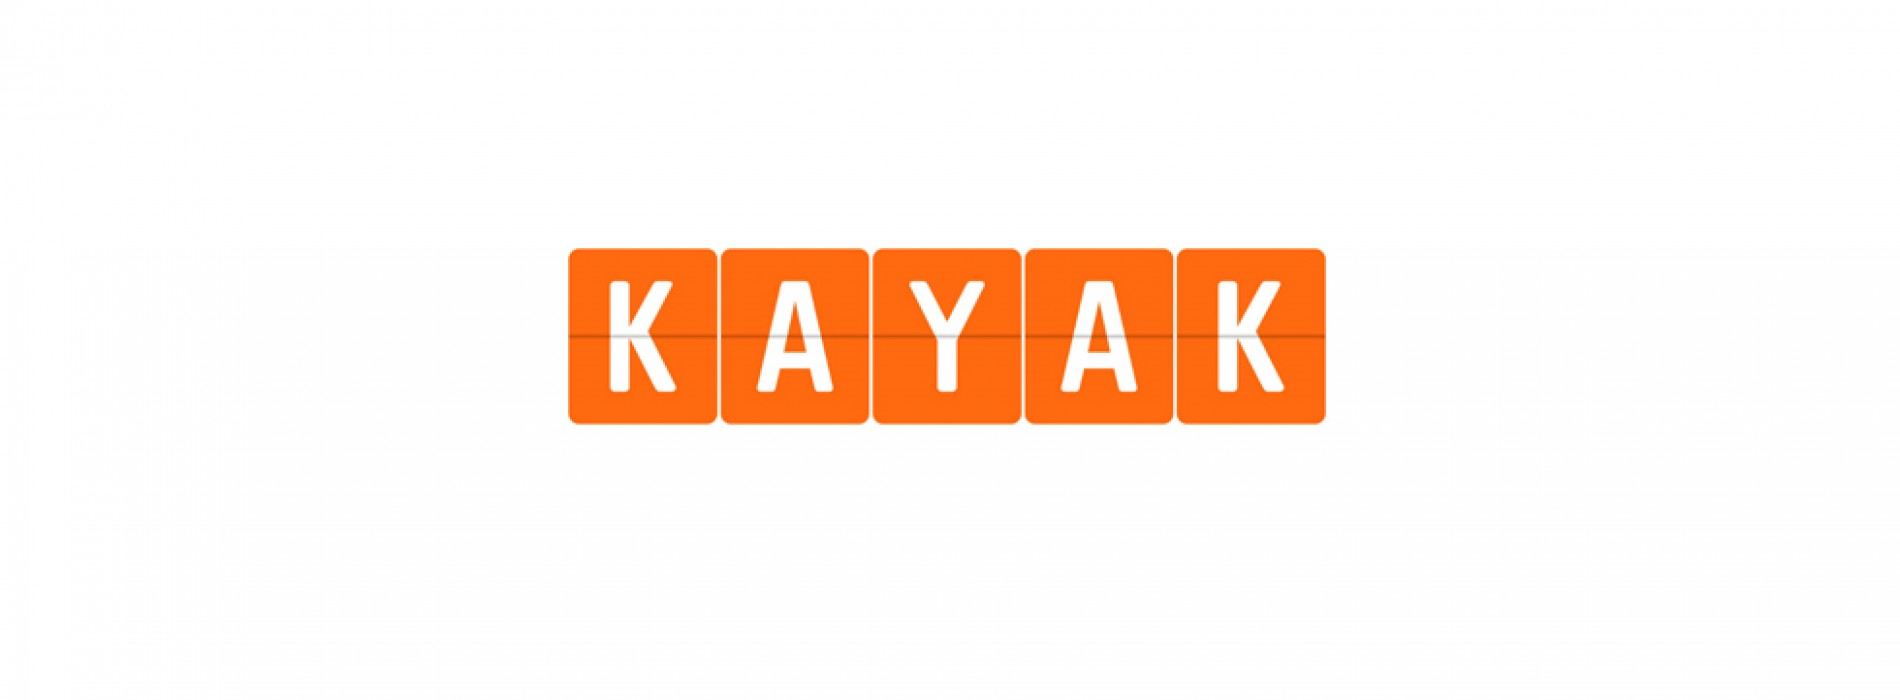 Travel search engine Kayak officially enters Indian market